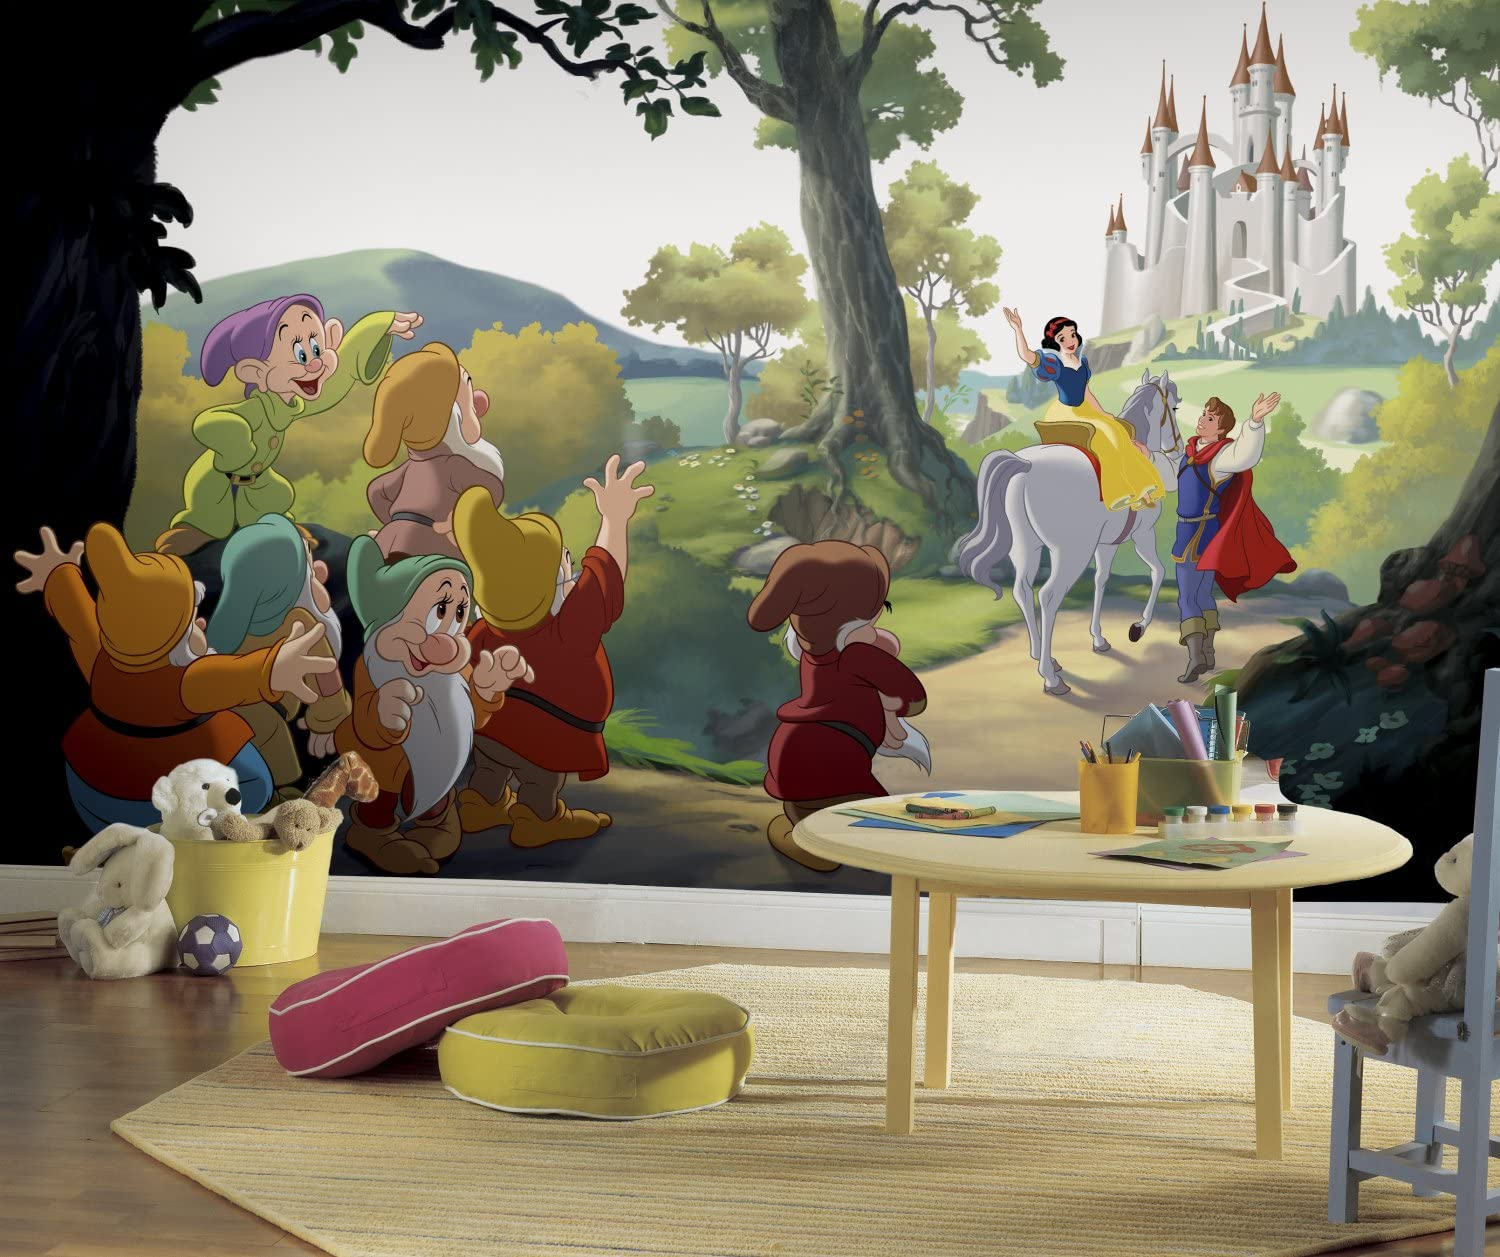 RoomMates Disney Princess Snow White 'Happily Ever After' Removable Wall Mural - 10.5 feet X 6 feet